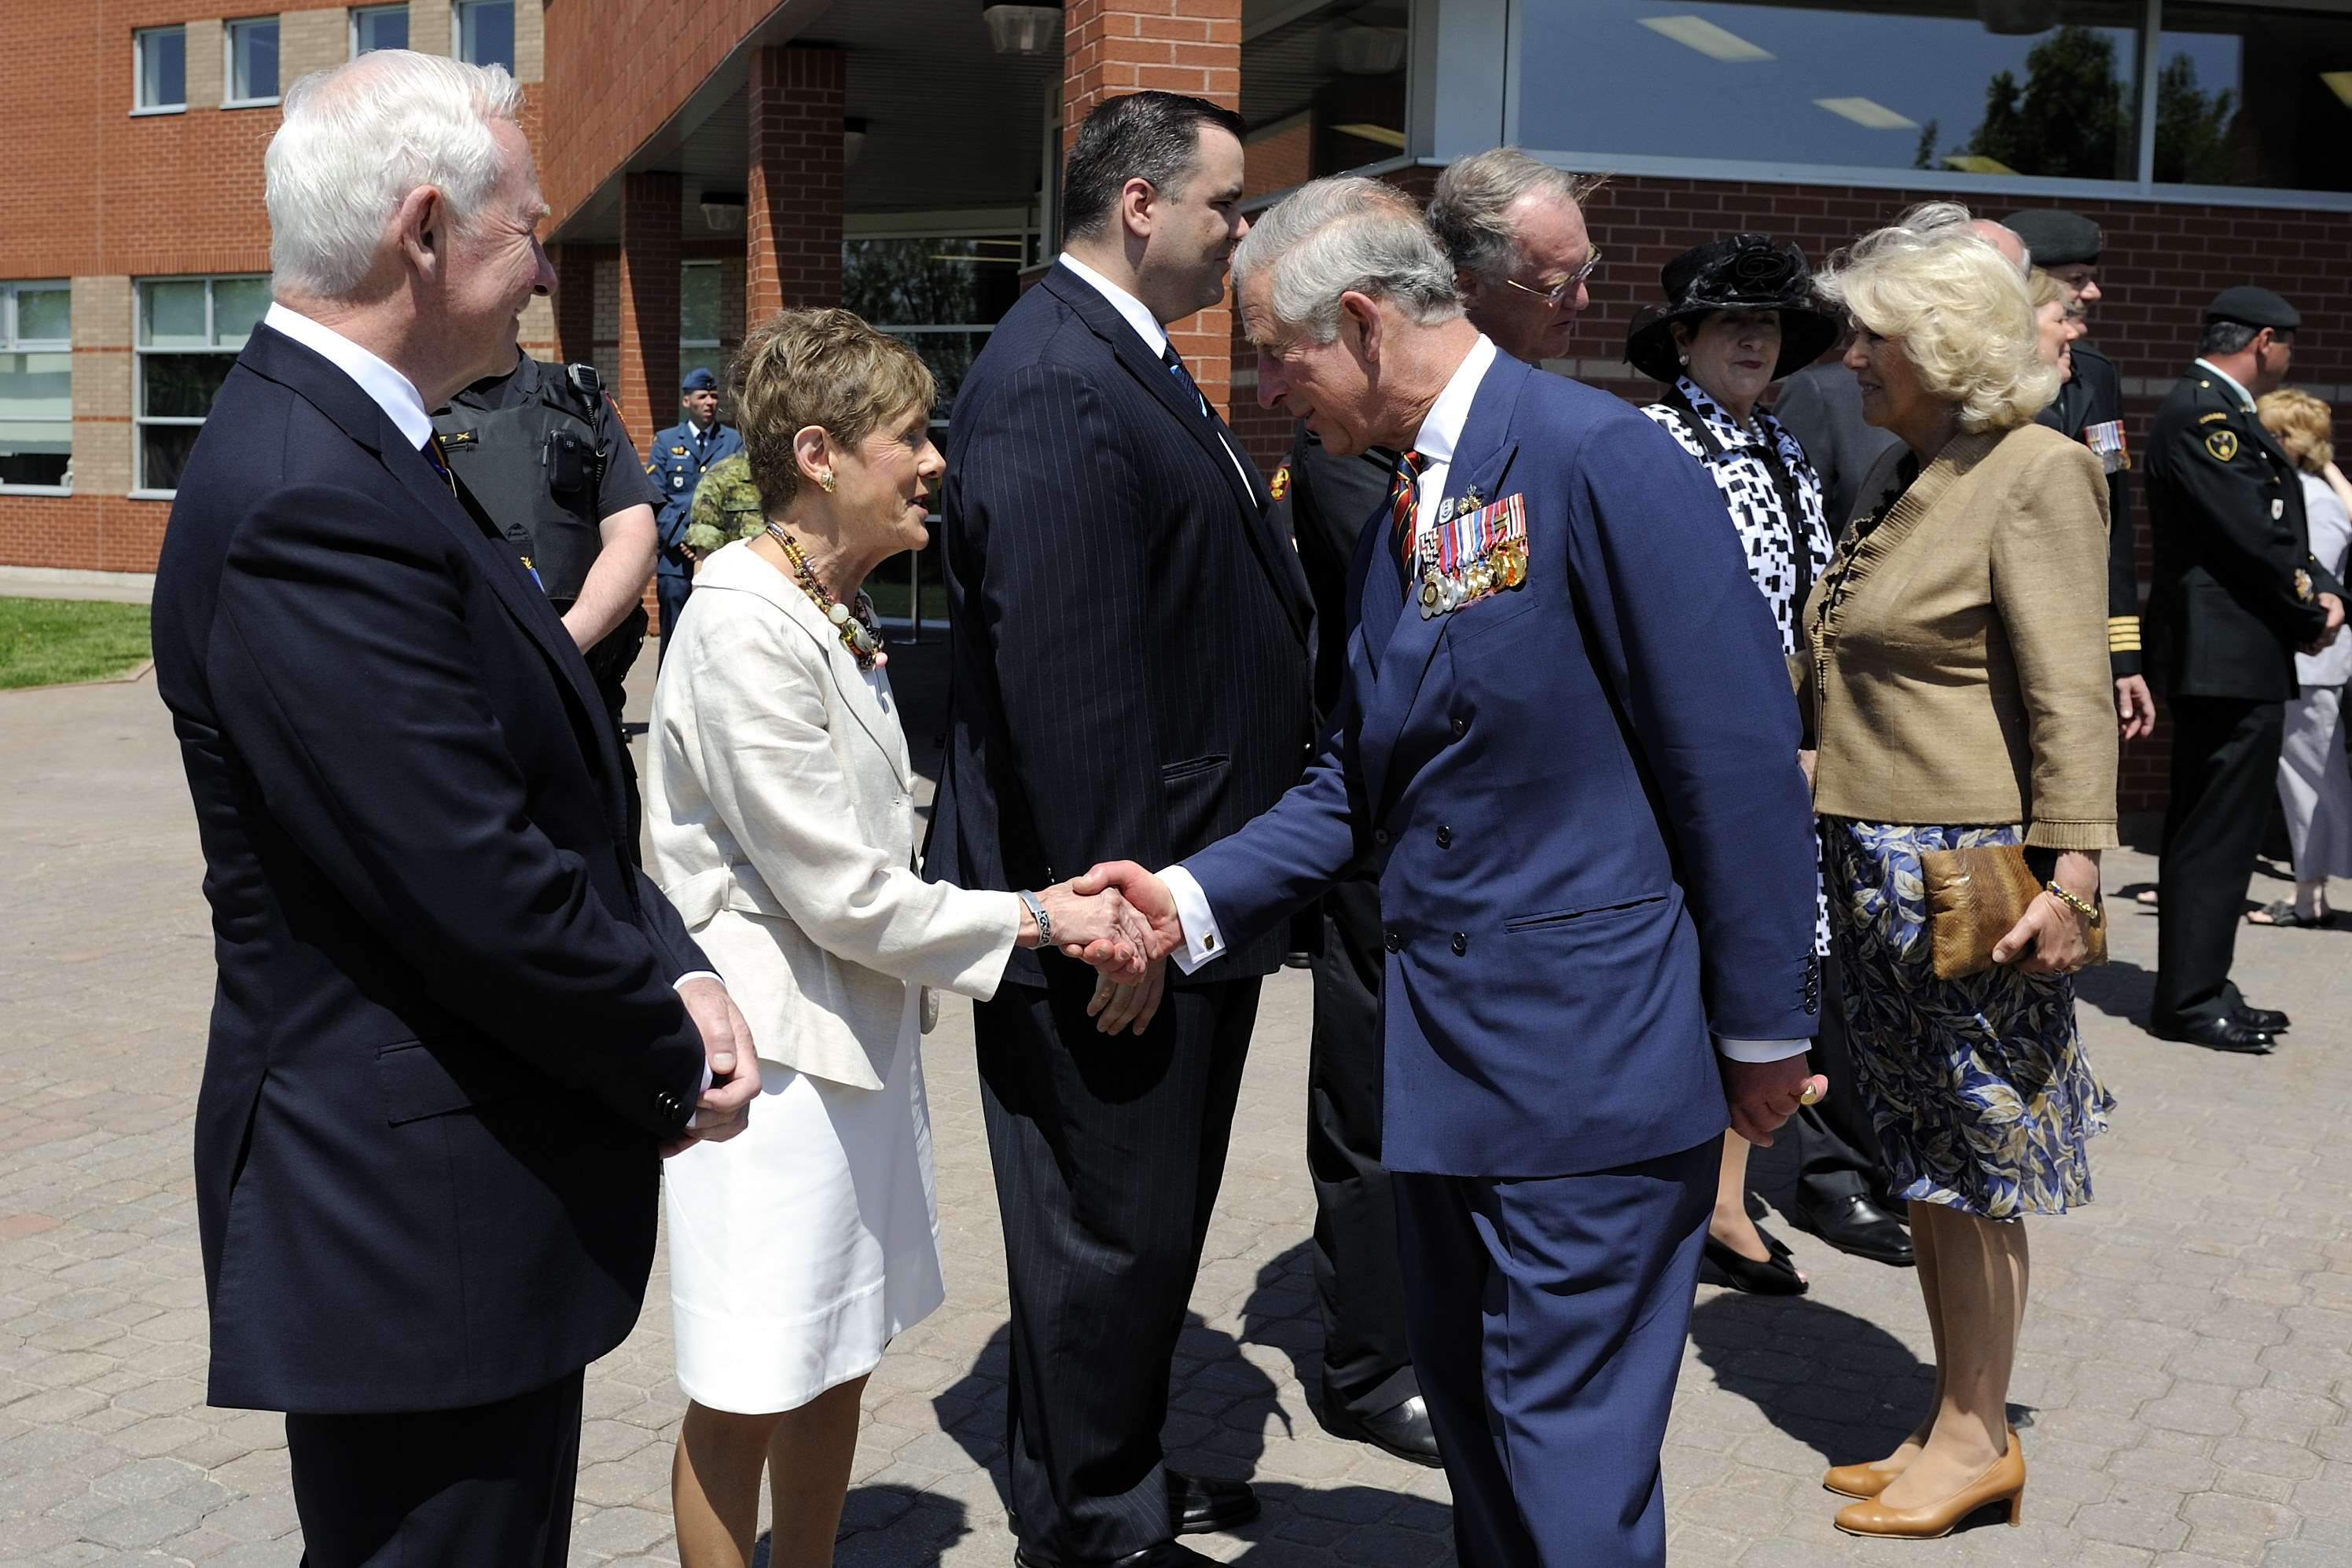 Their Excellencies the Right Honourable David Johnston, Governor General of Canada, and Mrs. Sharon Johnston officially welcomed Their Royal Highnesses The Prince of Wales and The Duchess of Cornwall to Canada.